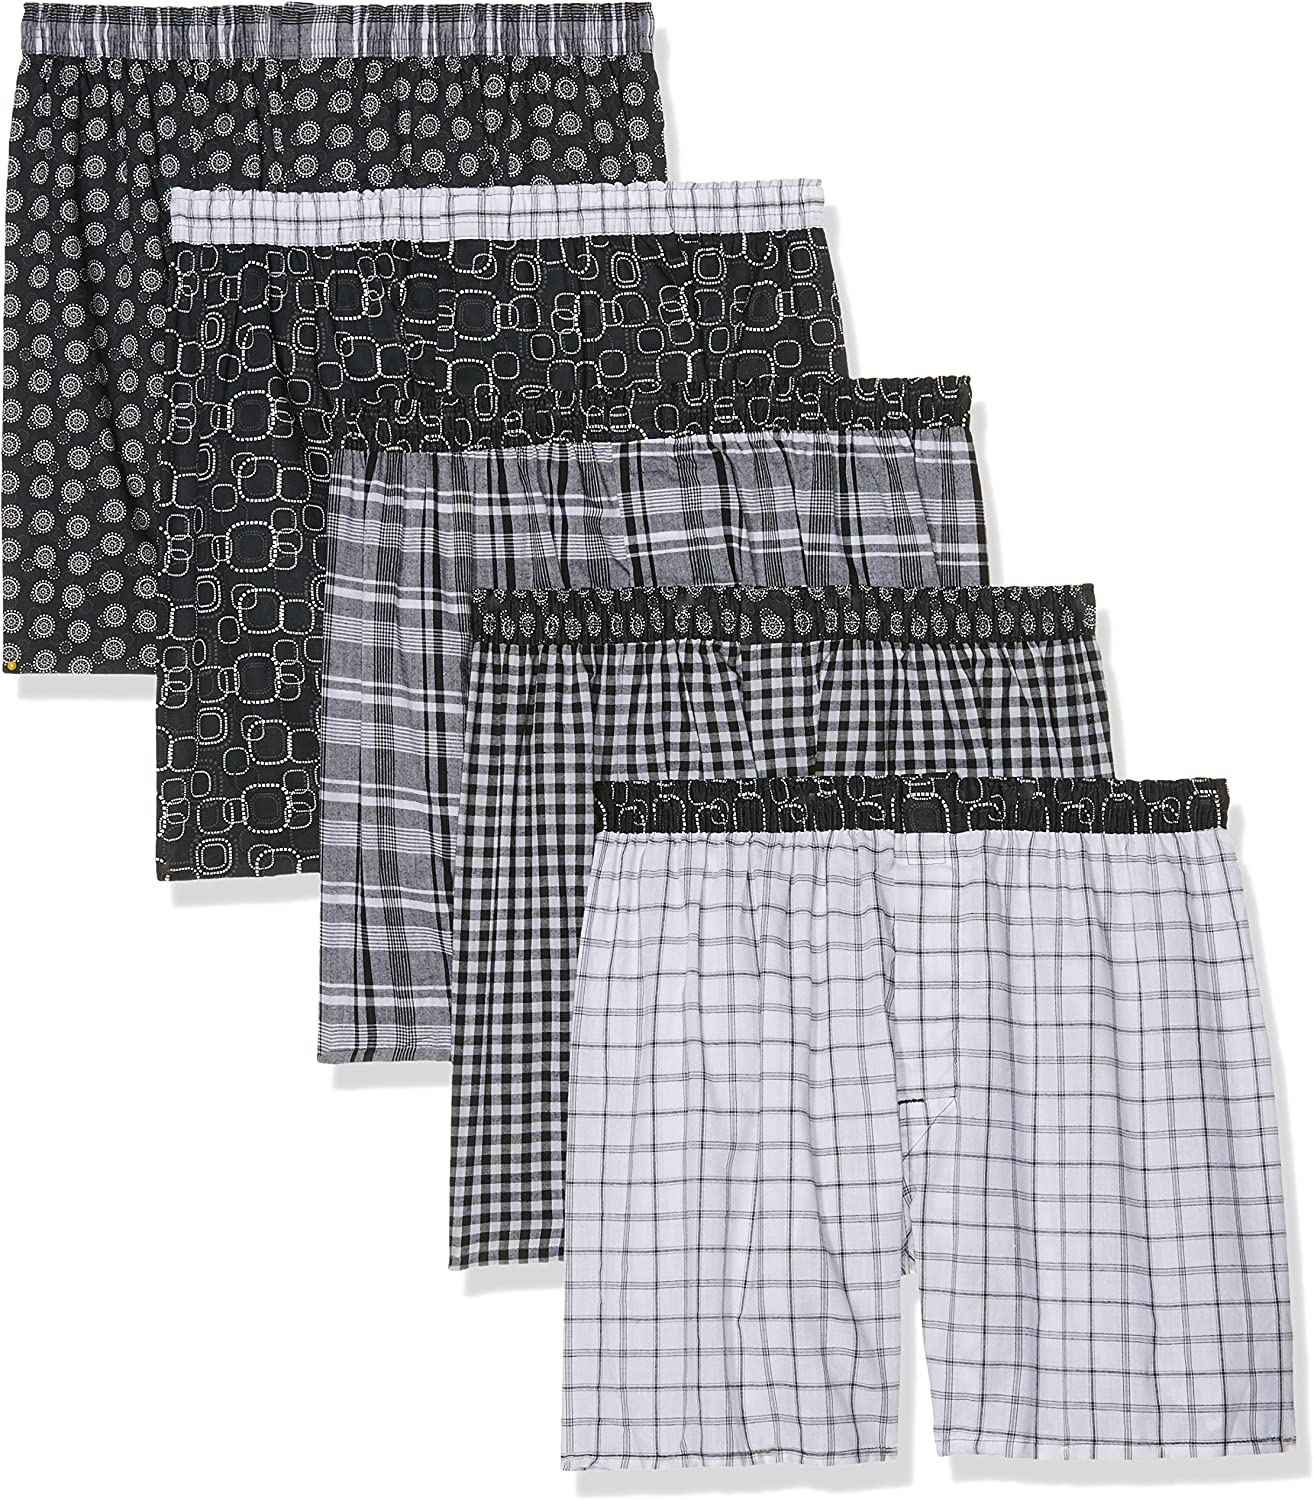 Hanes Mens Exposed Waistband Woven Boxers Shorts Underwear